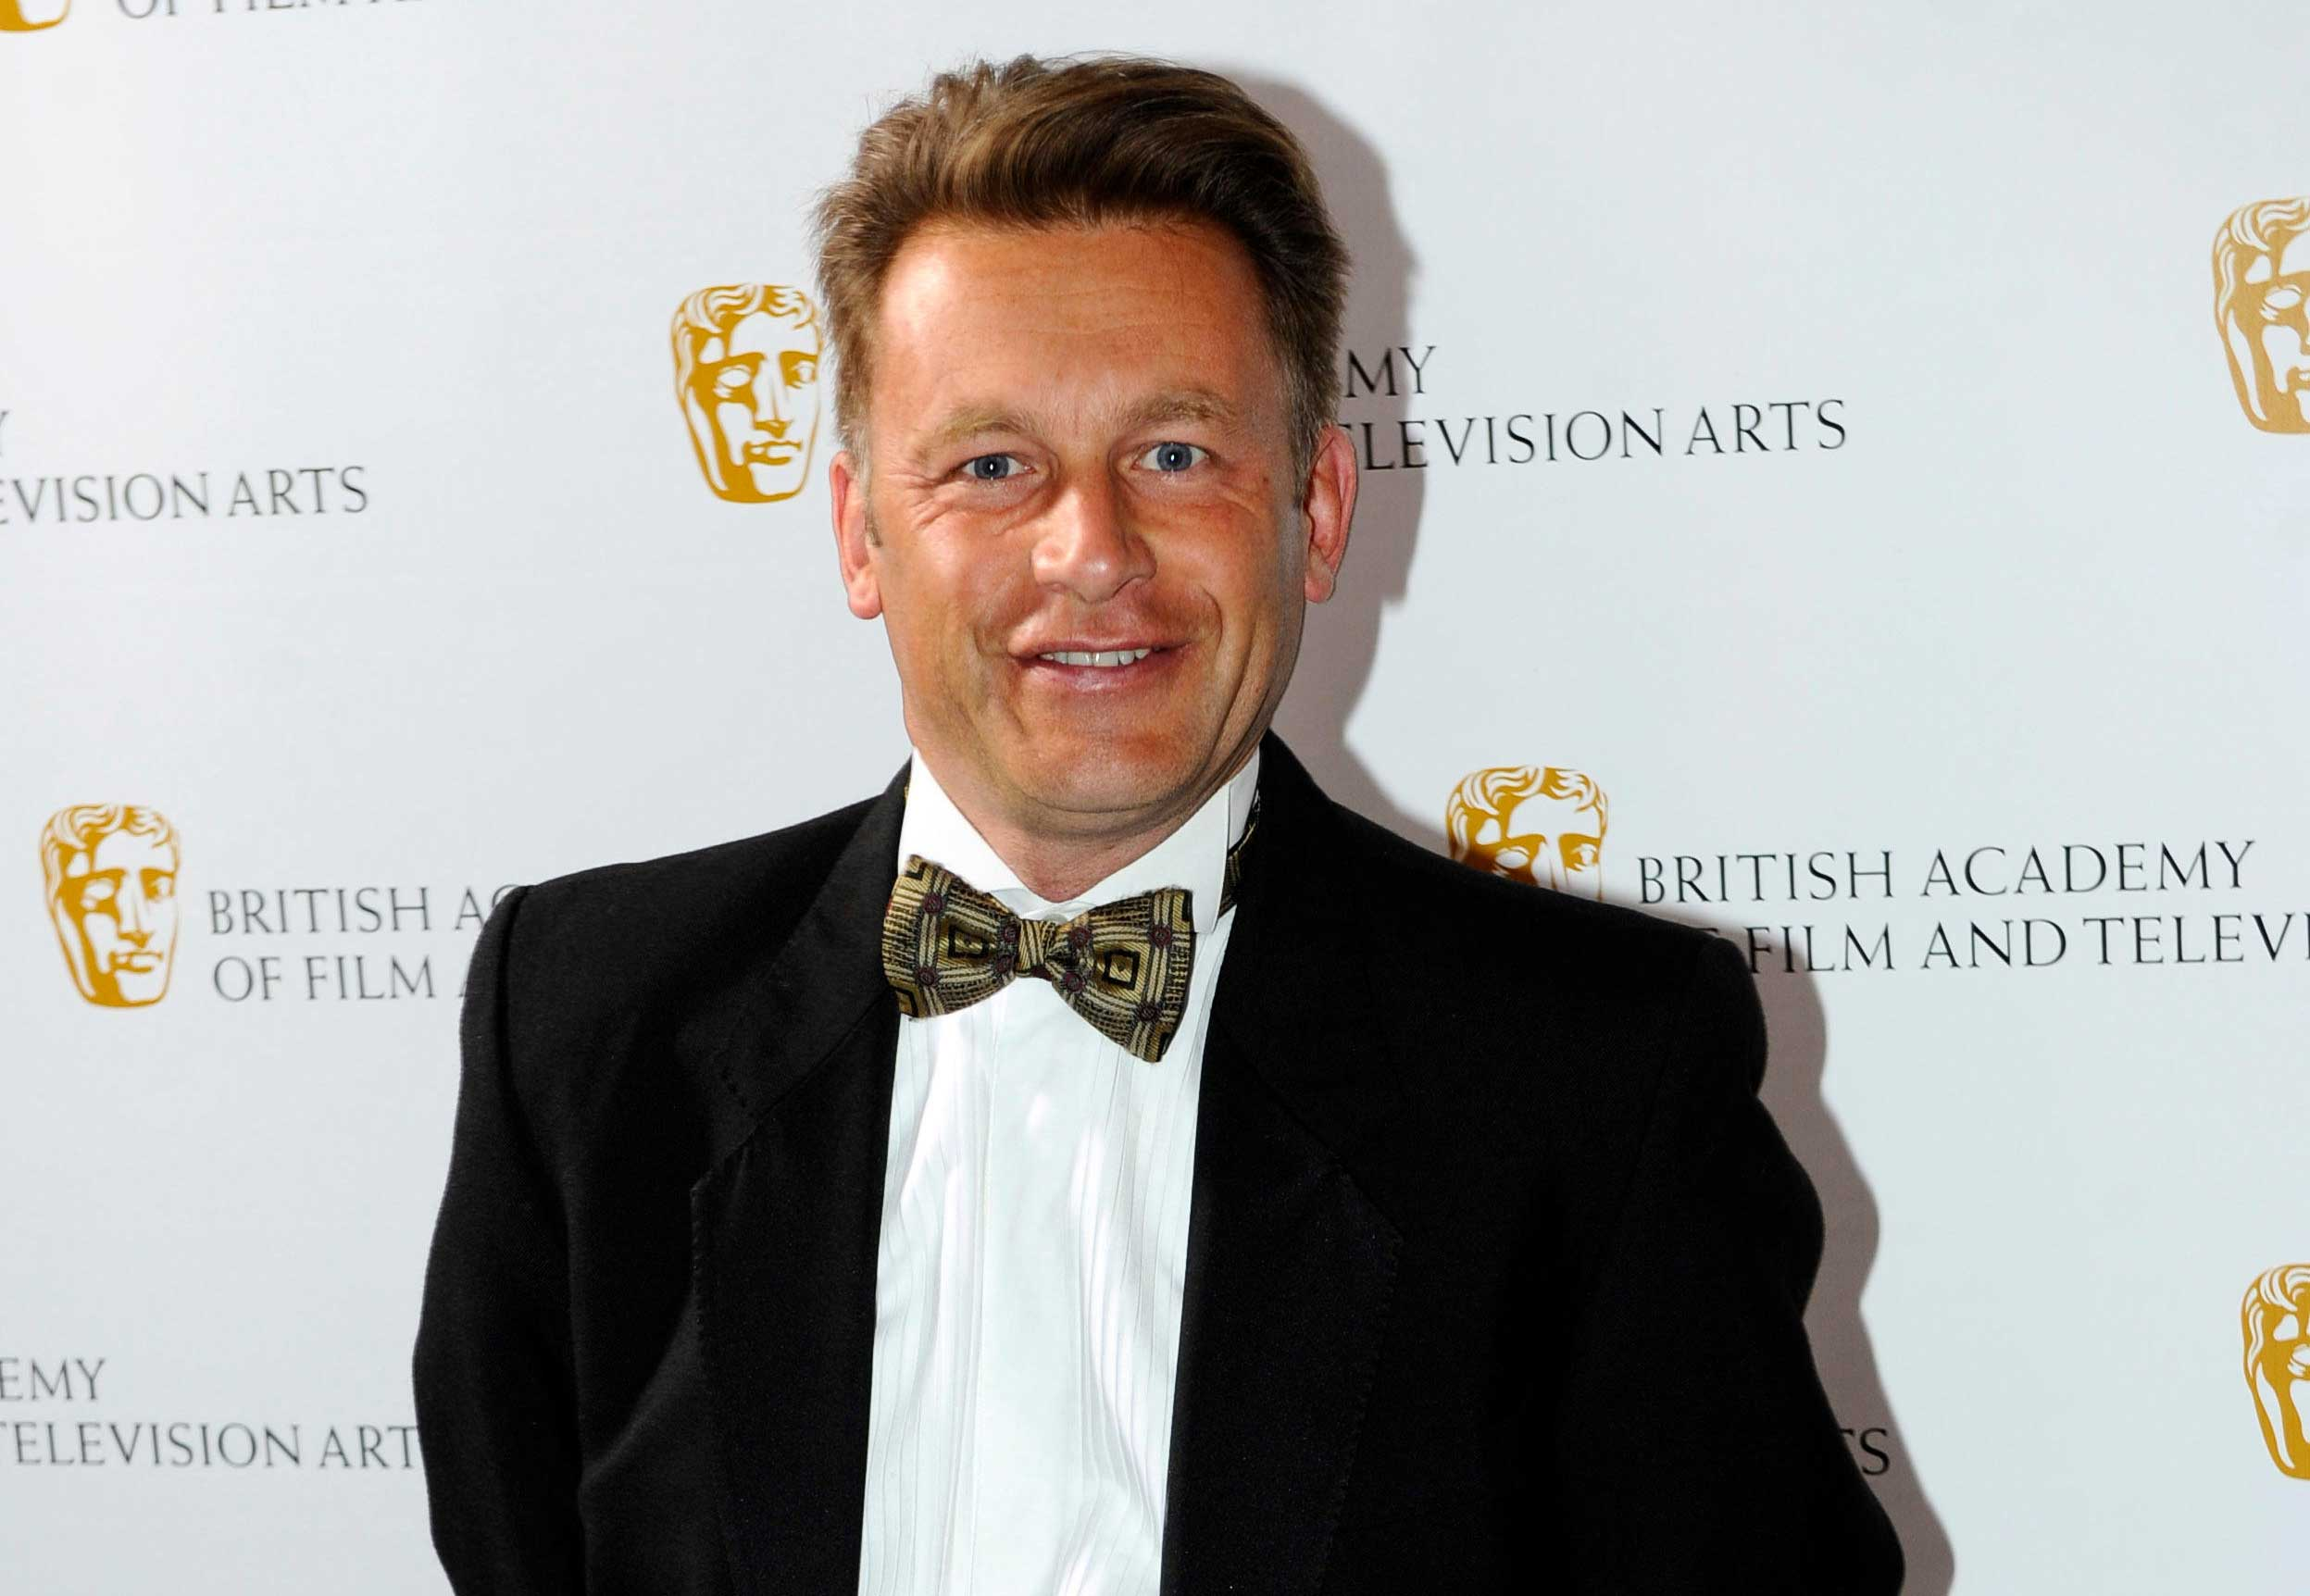 Chris-Packham.jpg